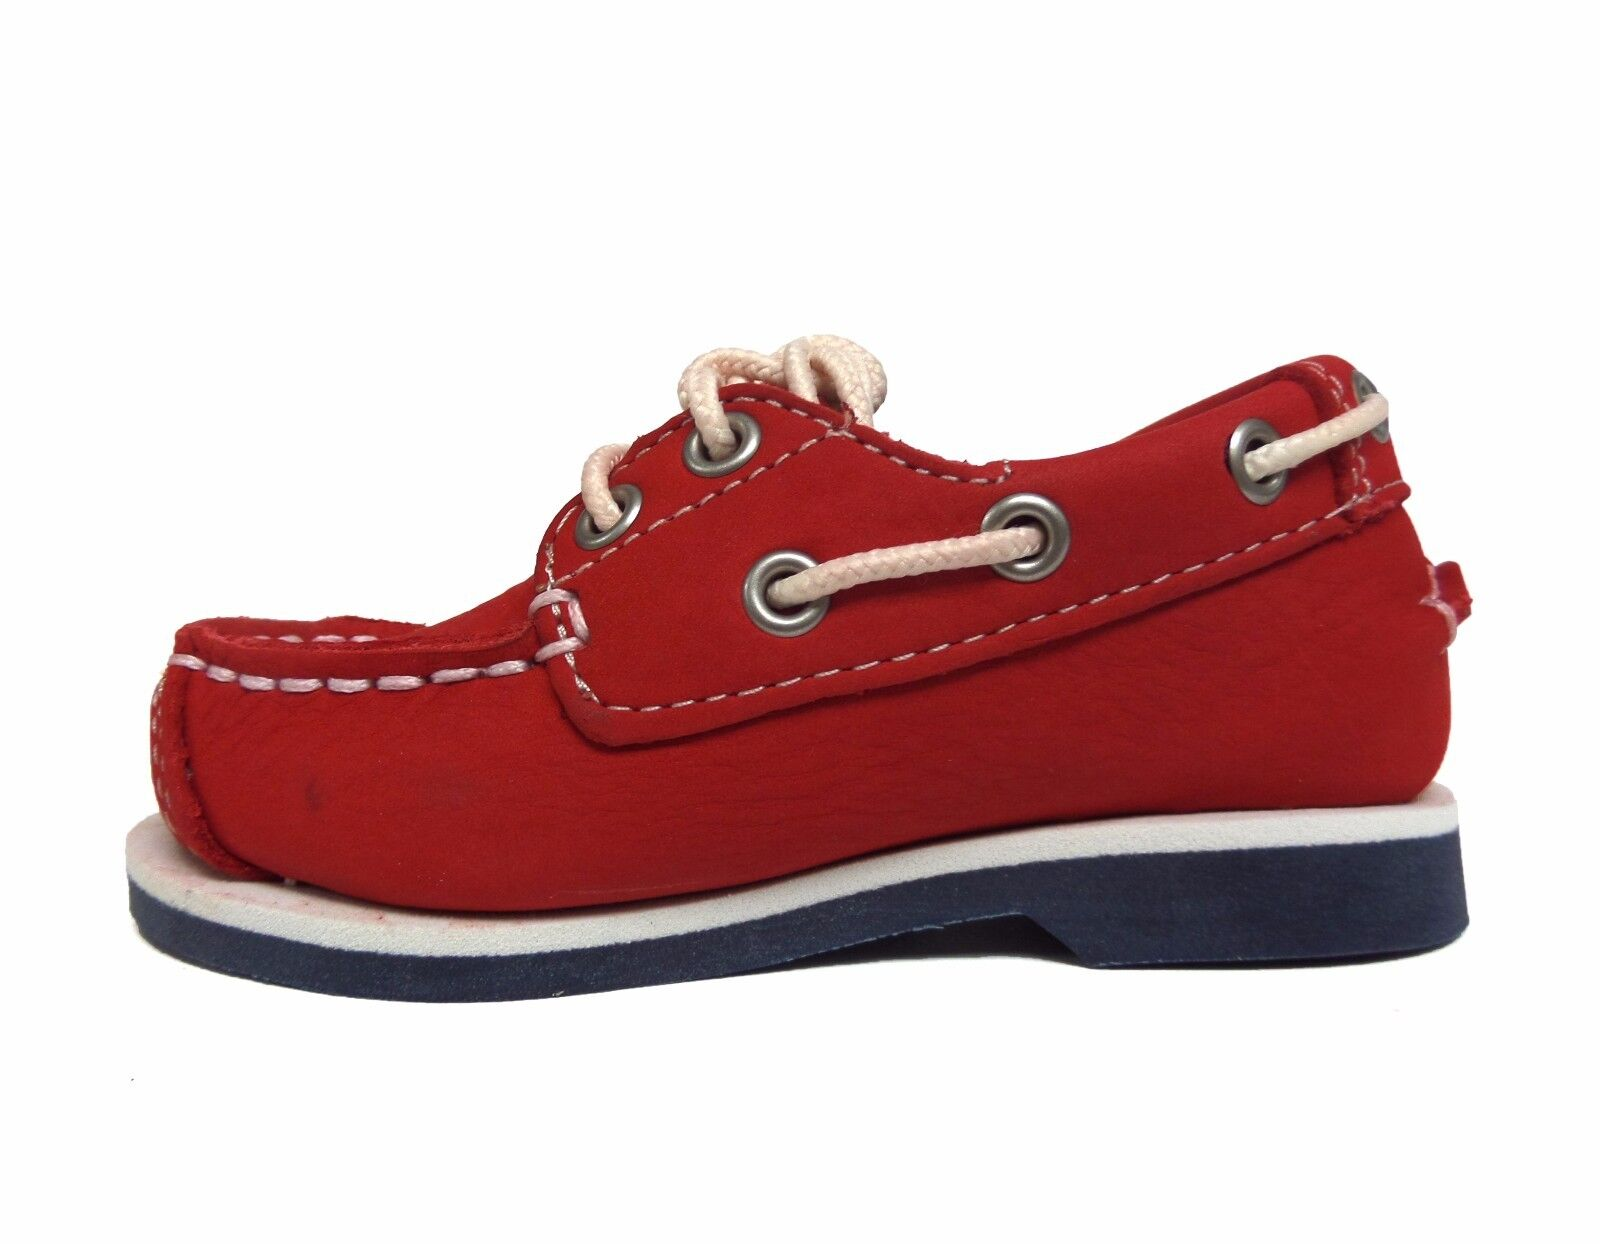 Timberland Kids' Toddler's PEAKS ISLAND 2 EYE BOAT Shoes Red 6886R a2 1